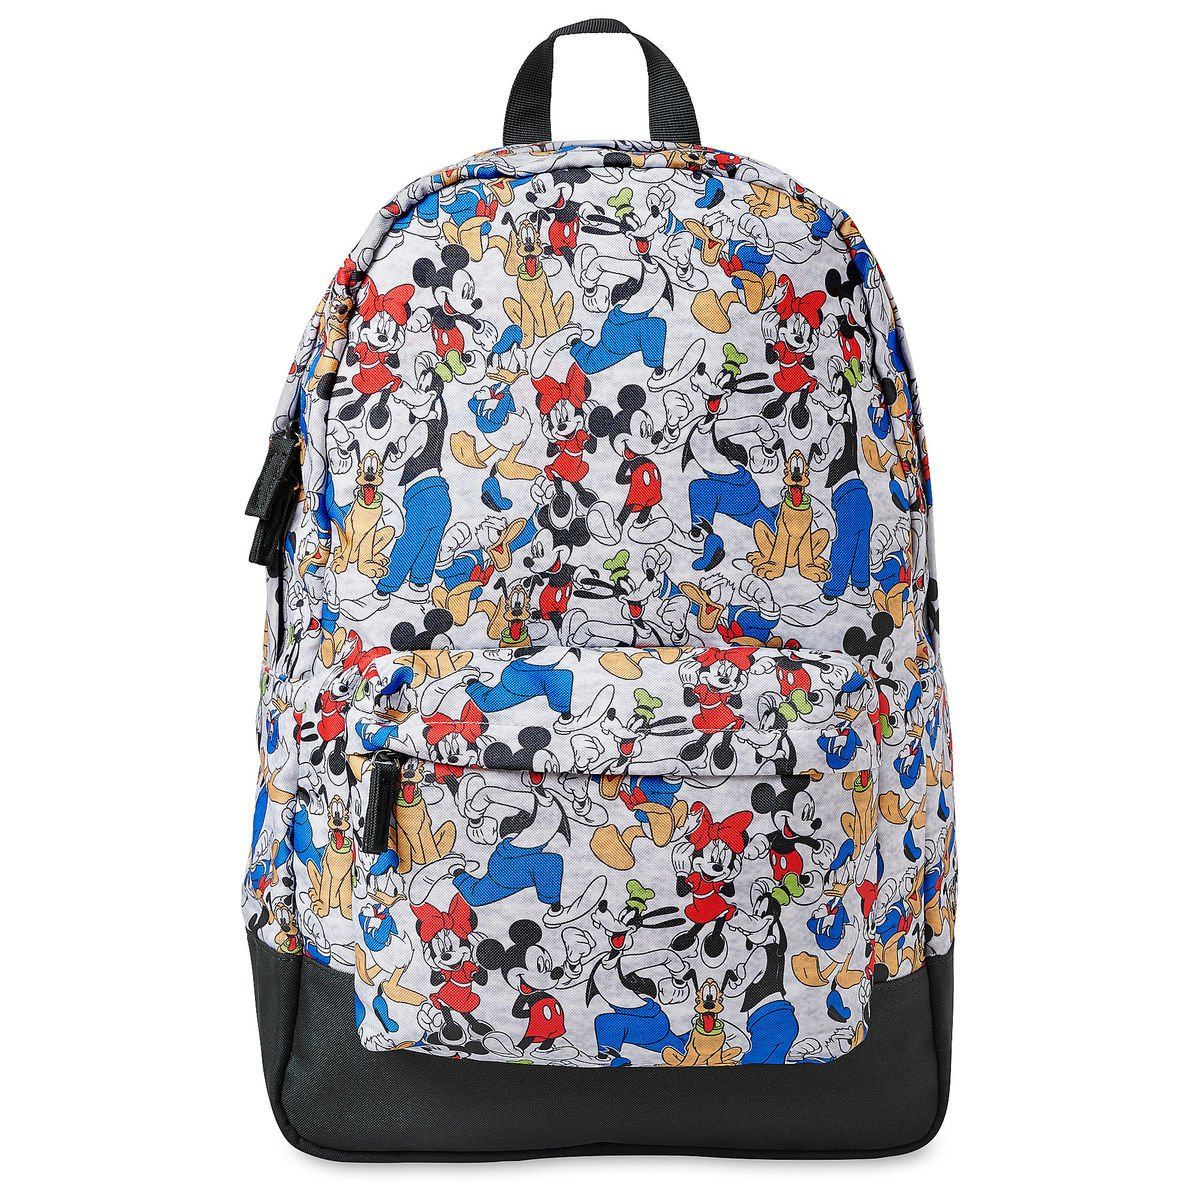 Disney Store Mickey Mouse Friends Donald Duck Pluto Goofy Minnie Backpack 2019